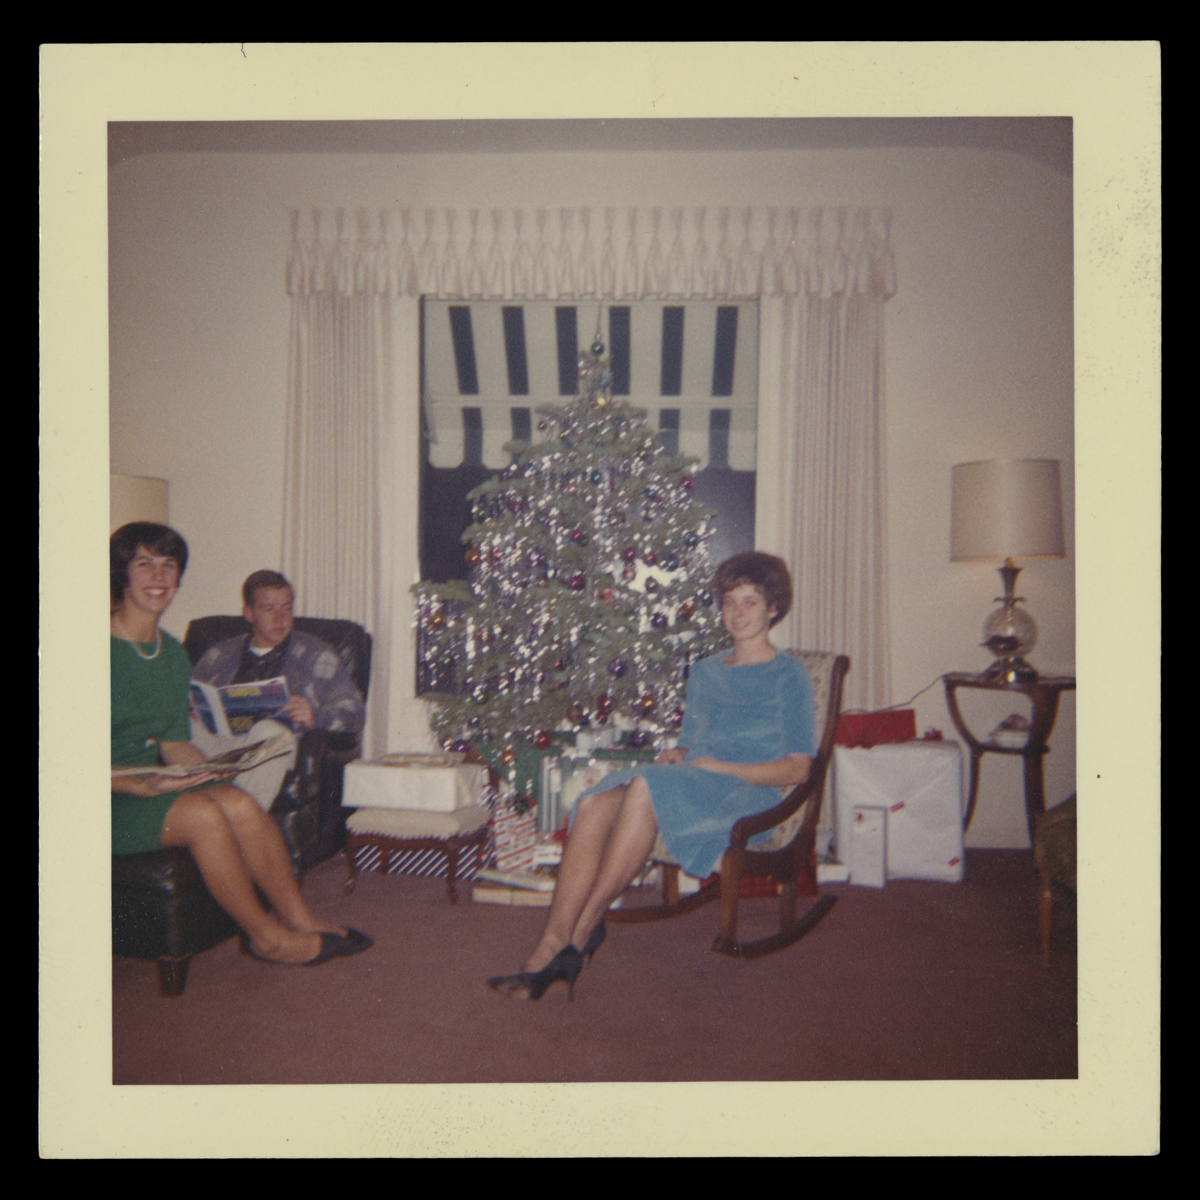 Two women and one man seated in a room around a silver aluminum Christmas tree